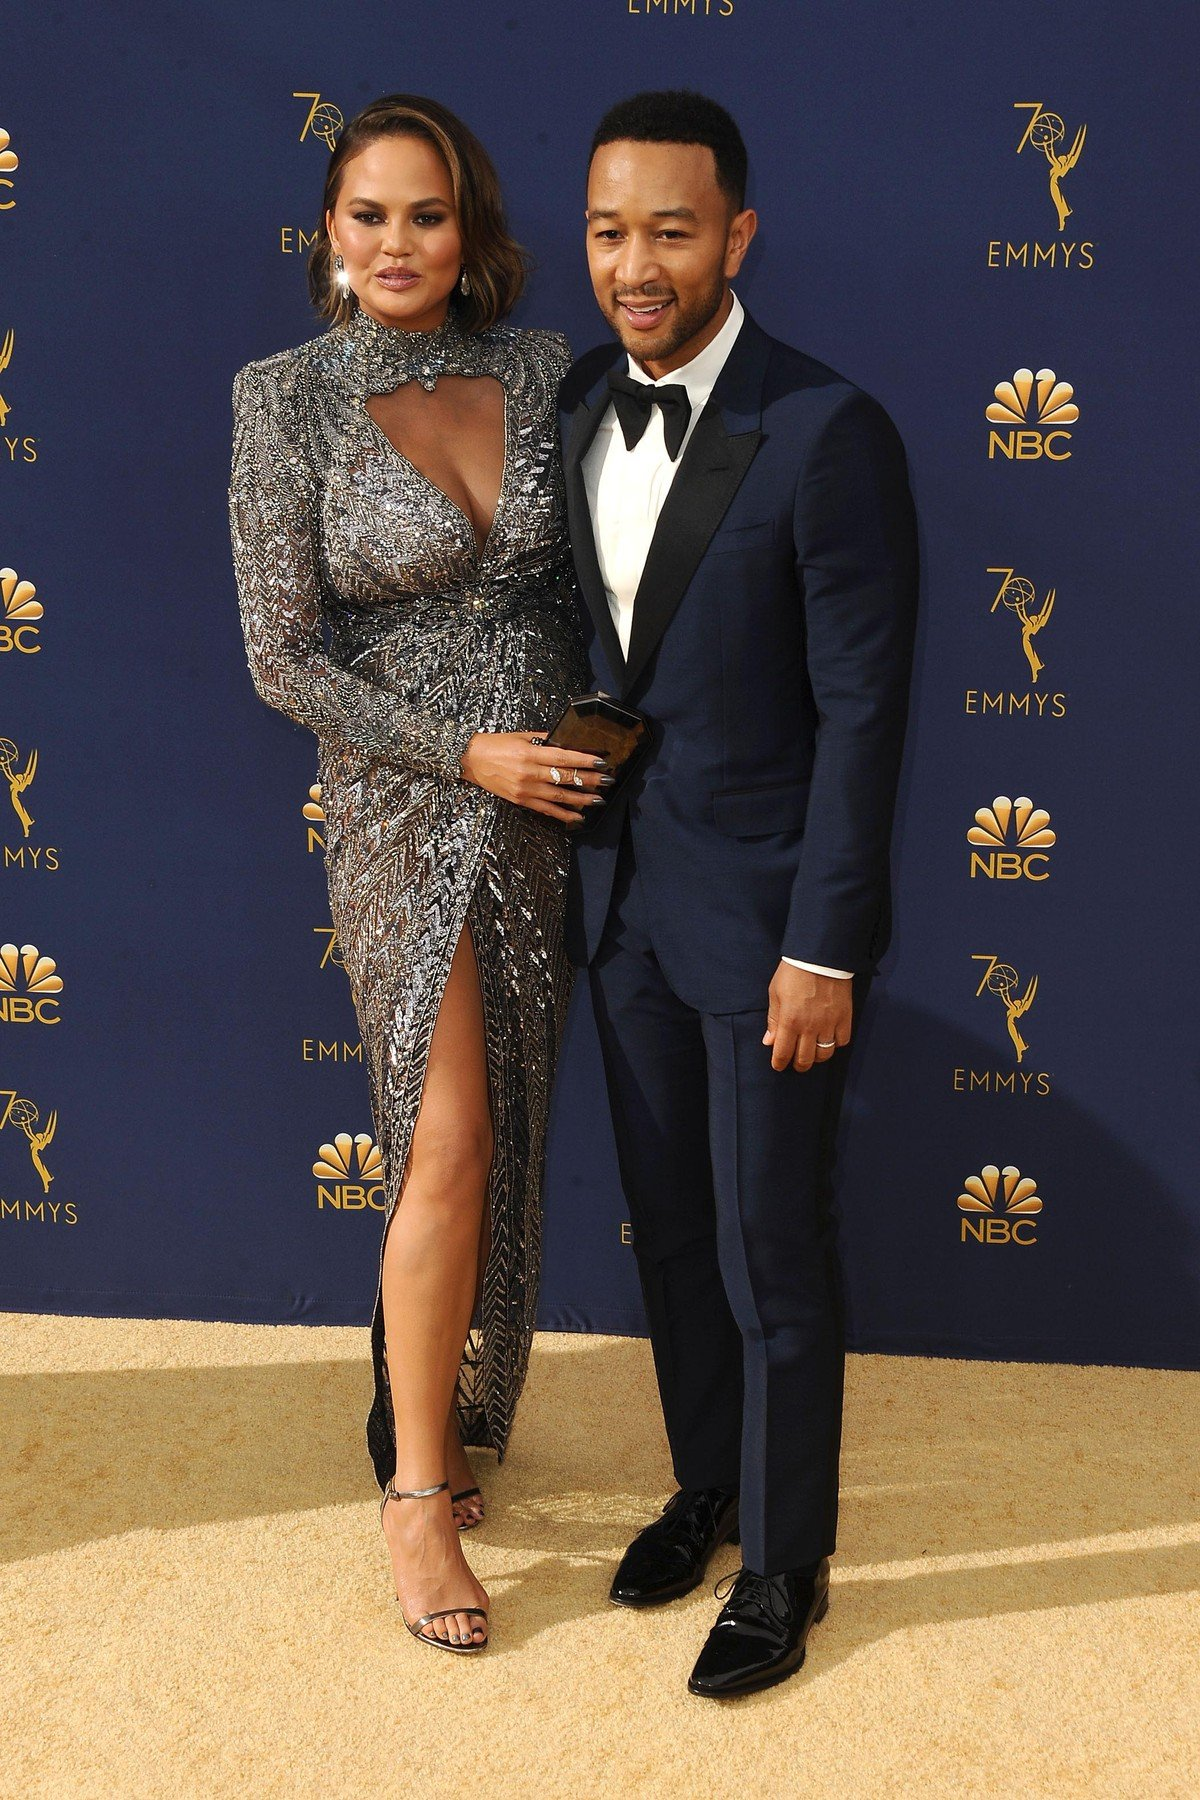 , Los Angeles, CA -20180917 - The 70th Primetime Emmy Awards Red Carpet, at Microsoft Theater  -PICTURED: Chrissy Teigen, John Legend -, Image: 387159464, License: Rights-managed, Restrictions: , Model Release: no, Credit line: Profimedia, INSTAR Images